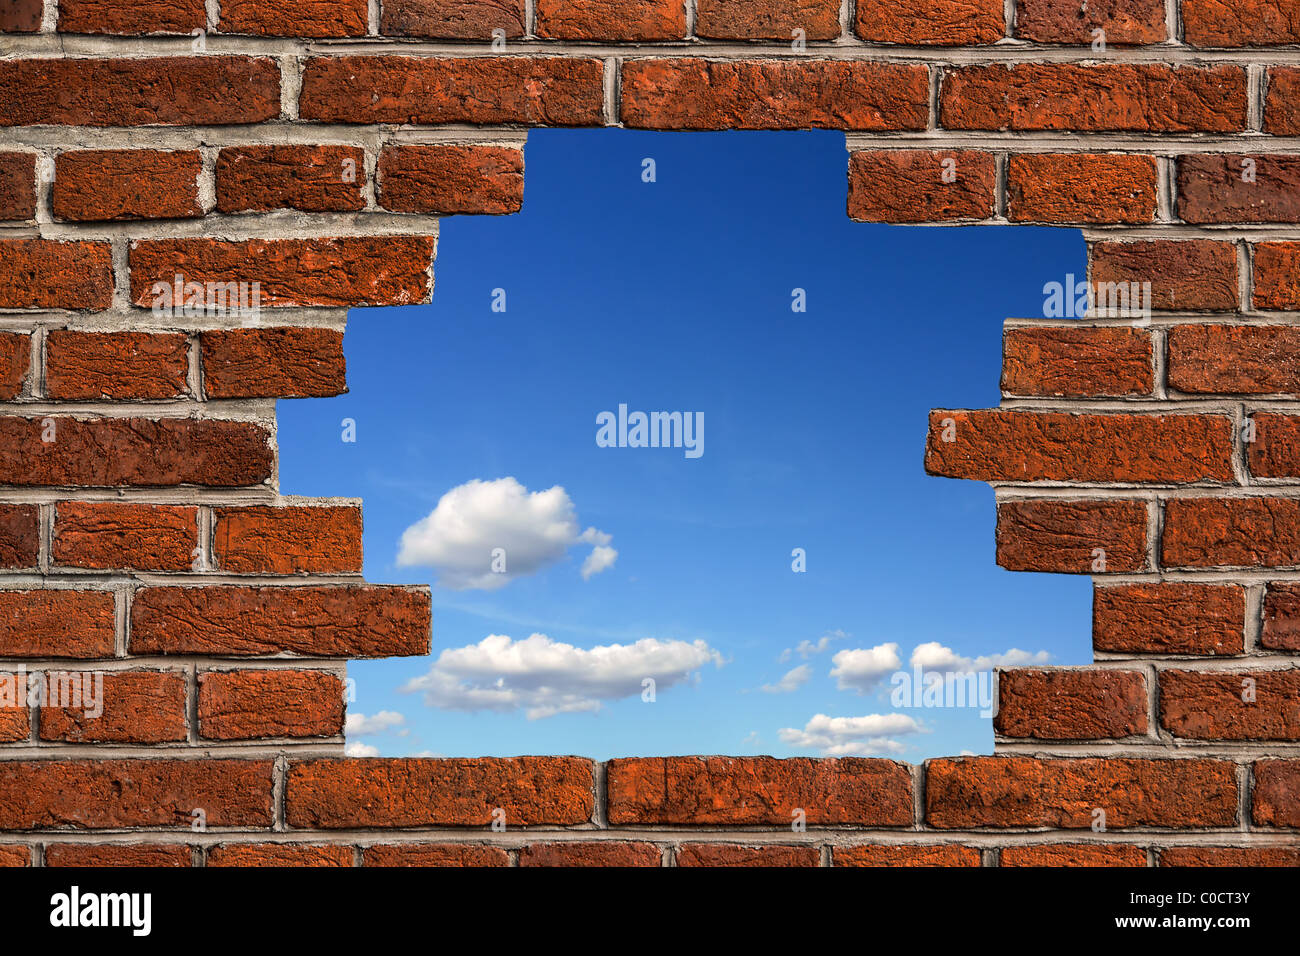 Blue sky seen through a hole made in the brickwall - Stock Image